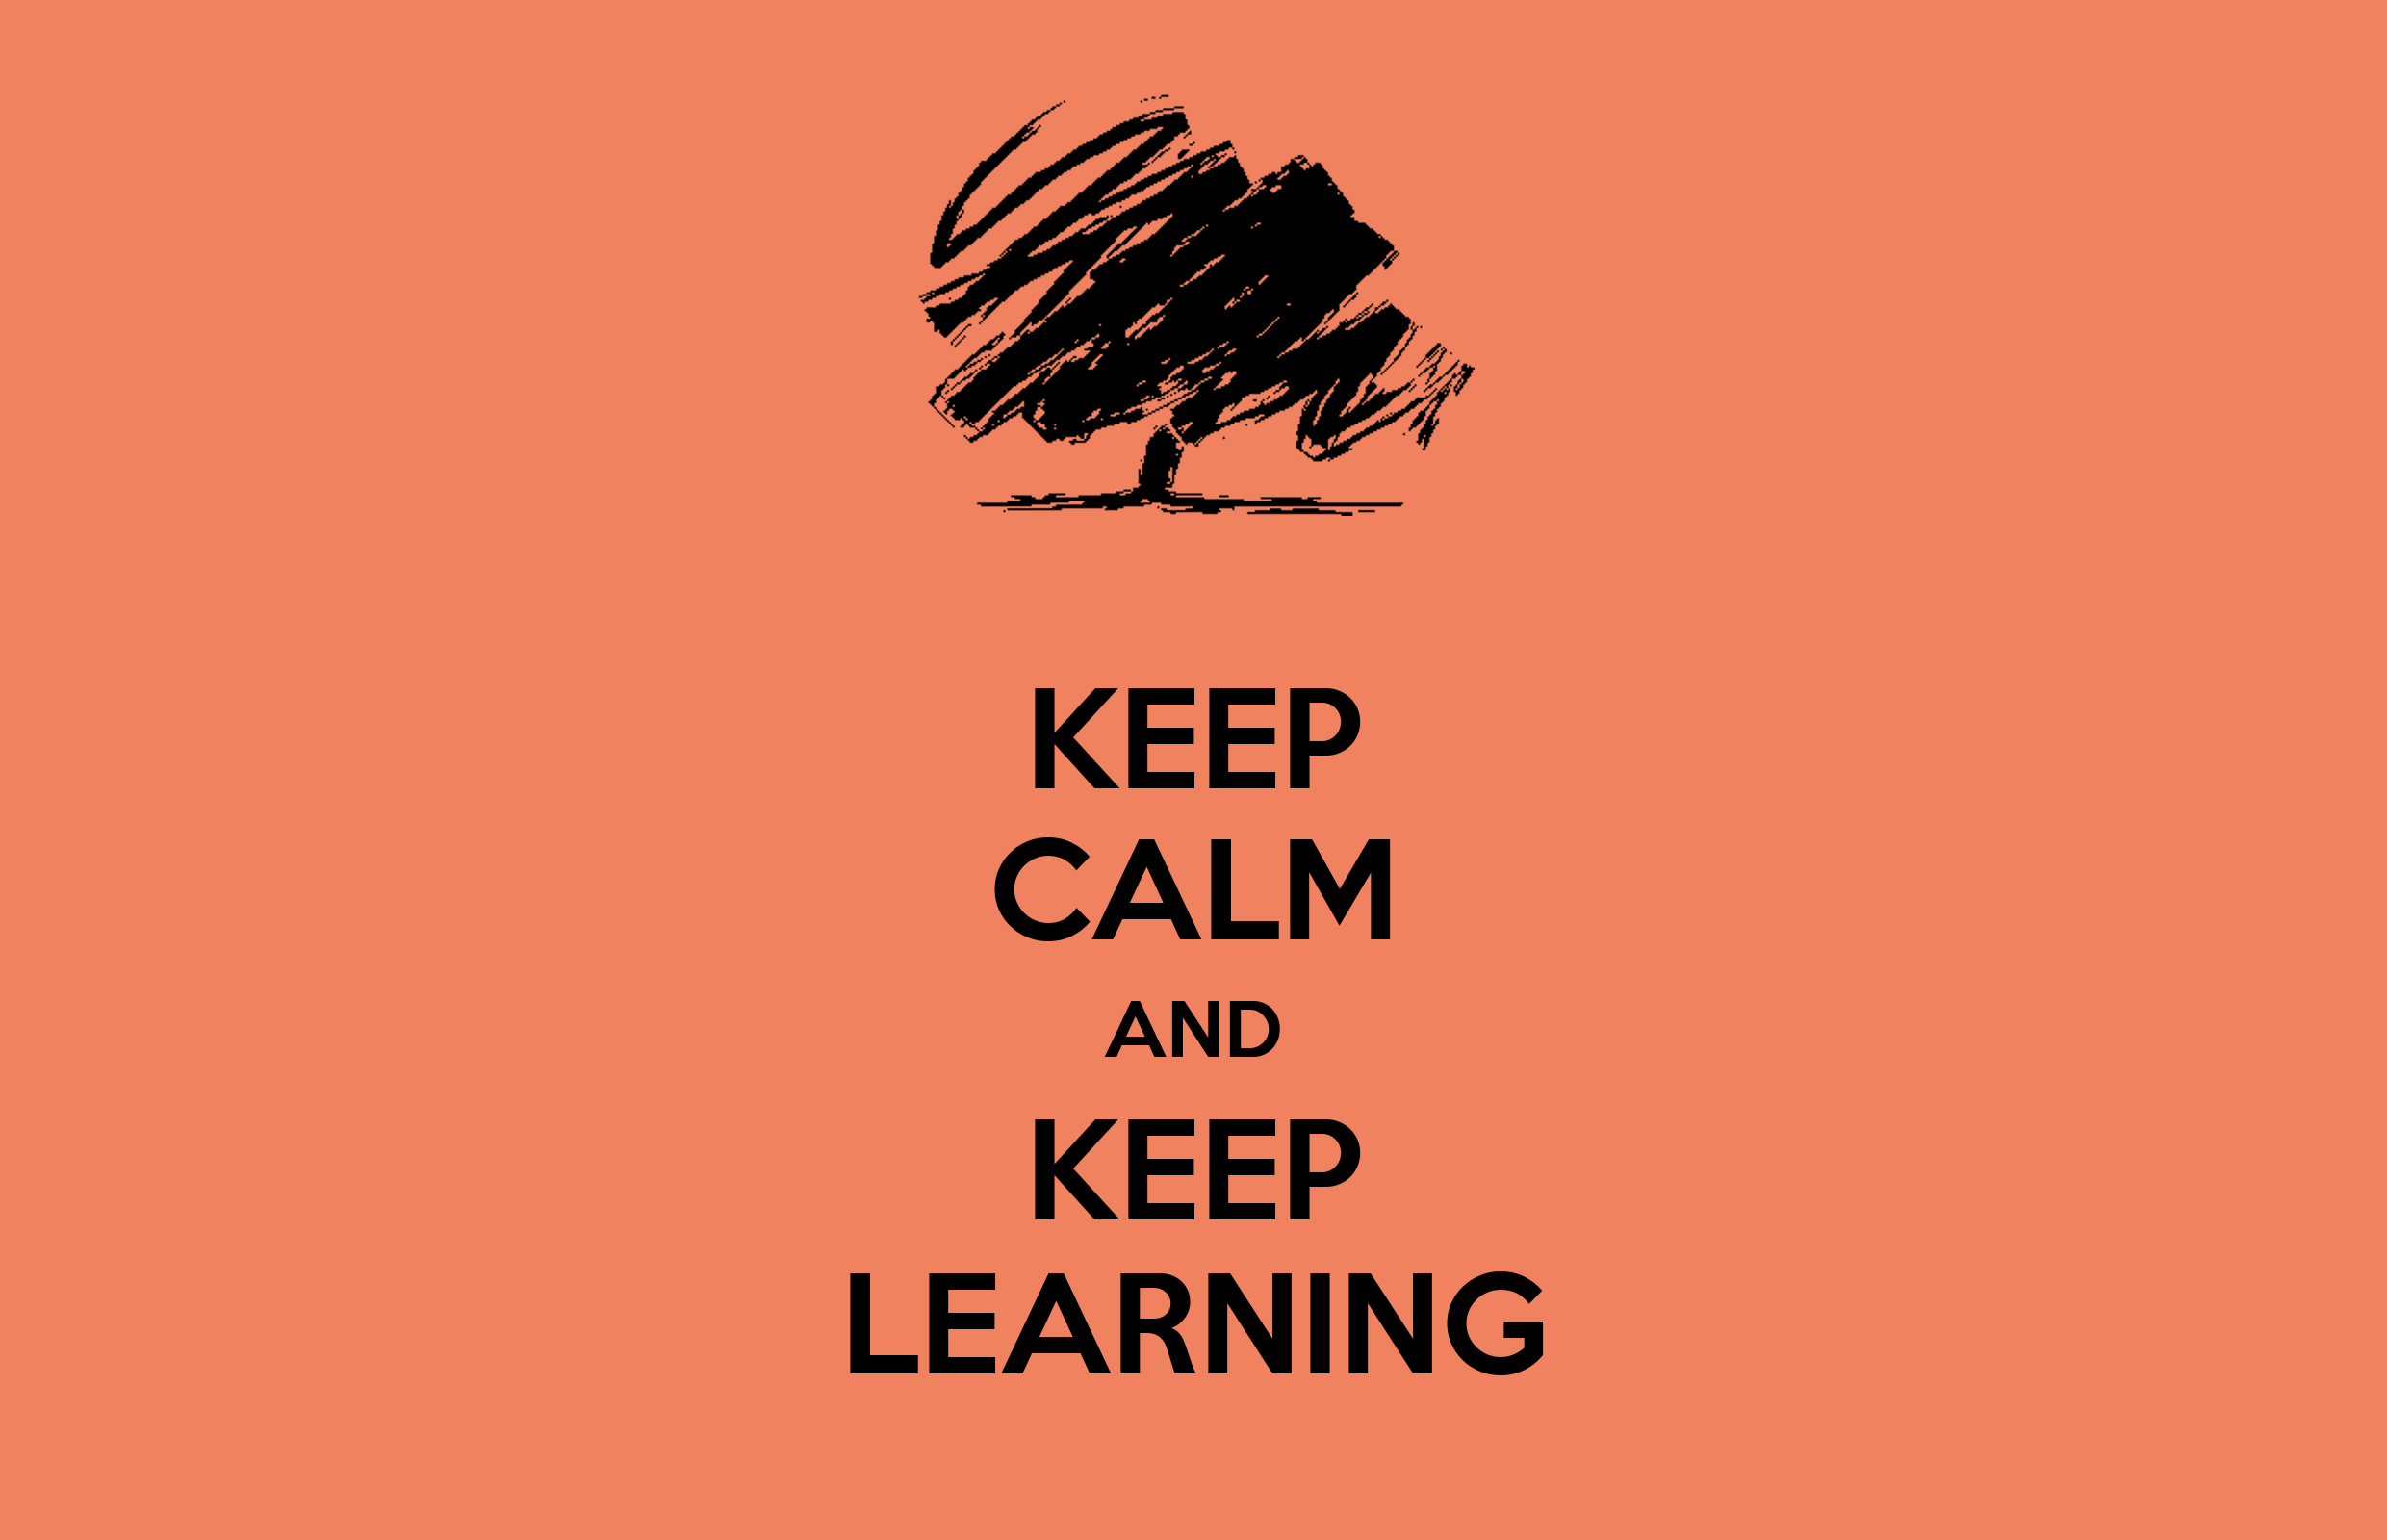 KEEP CALM AND KEEP LEARNING Poster